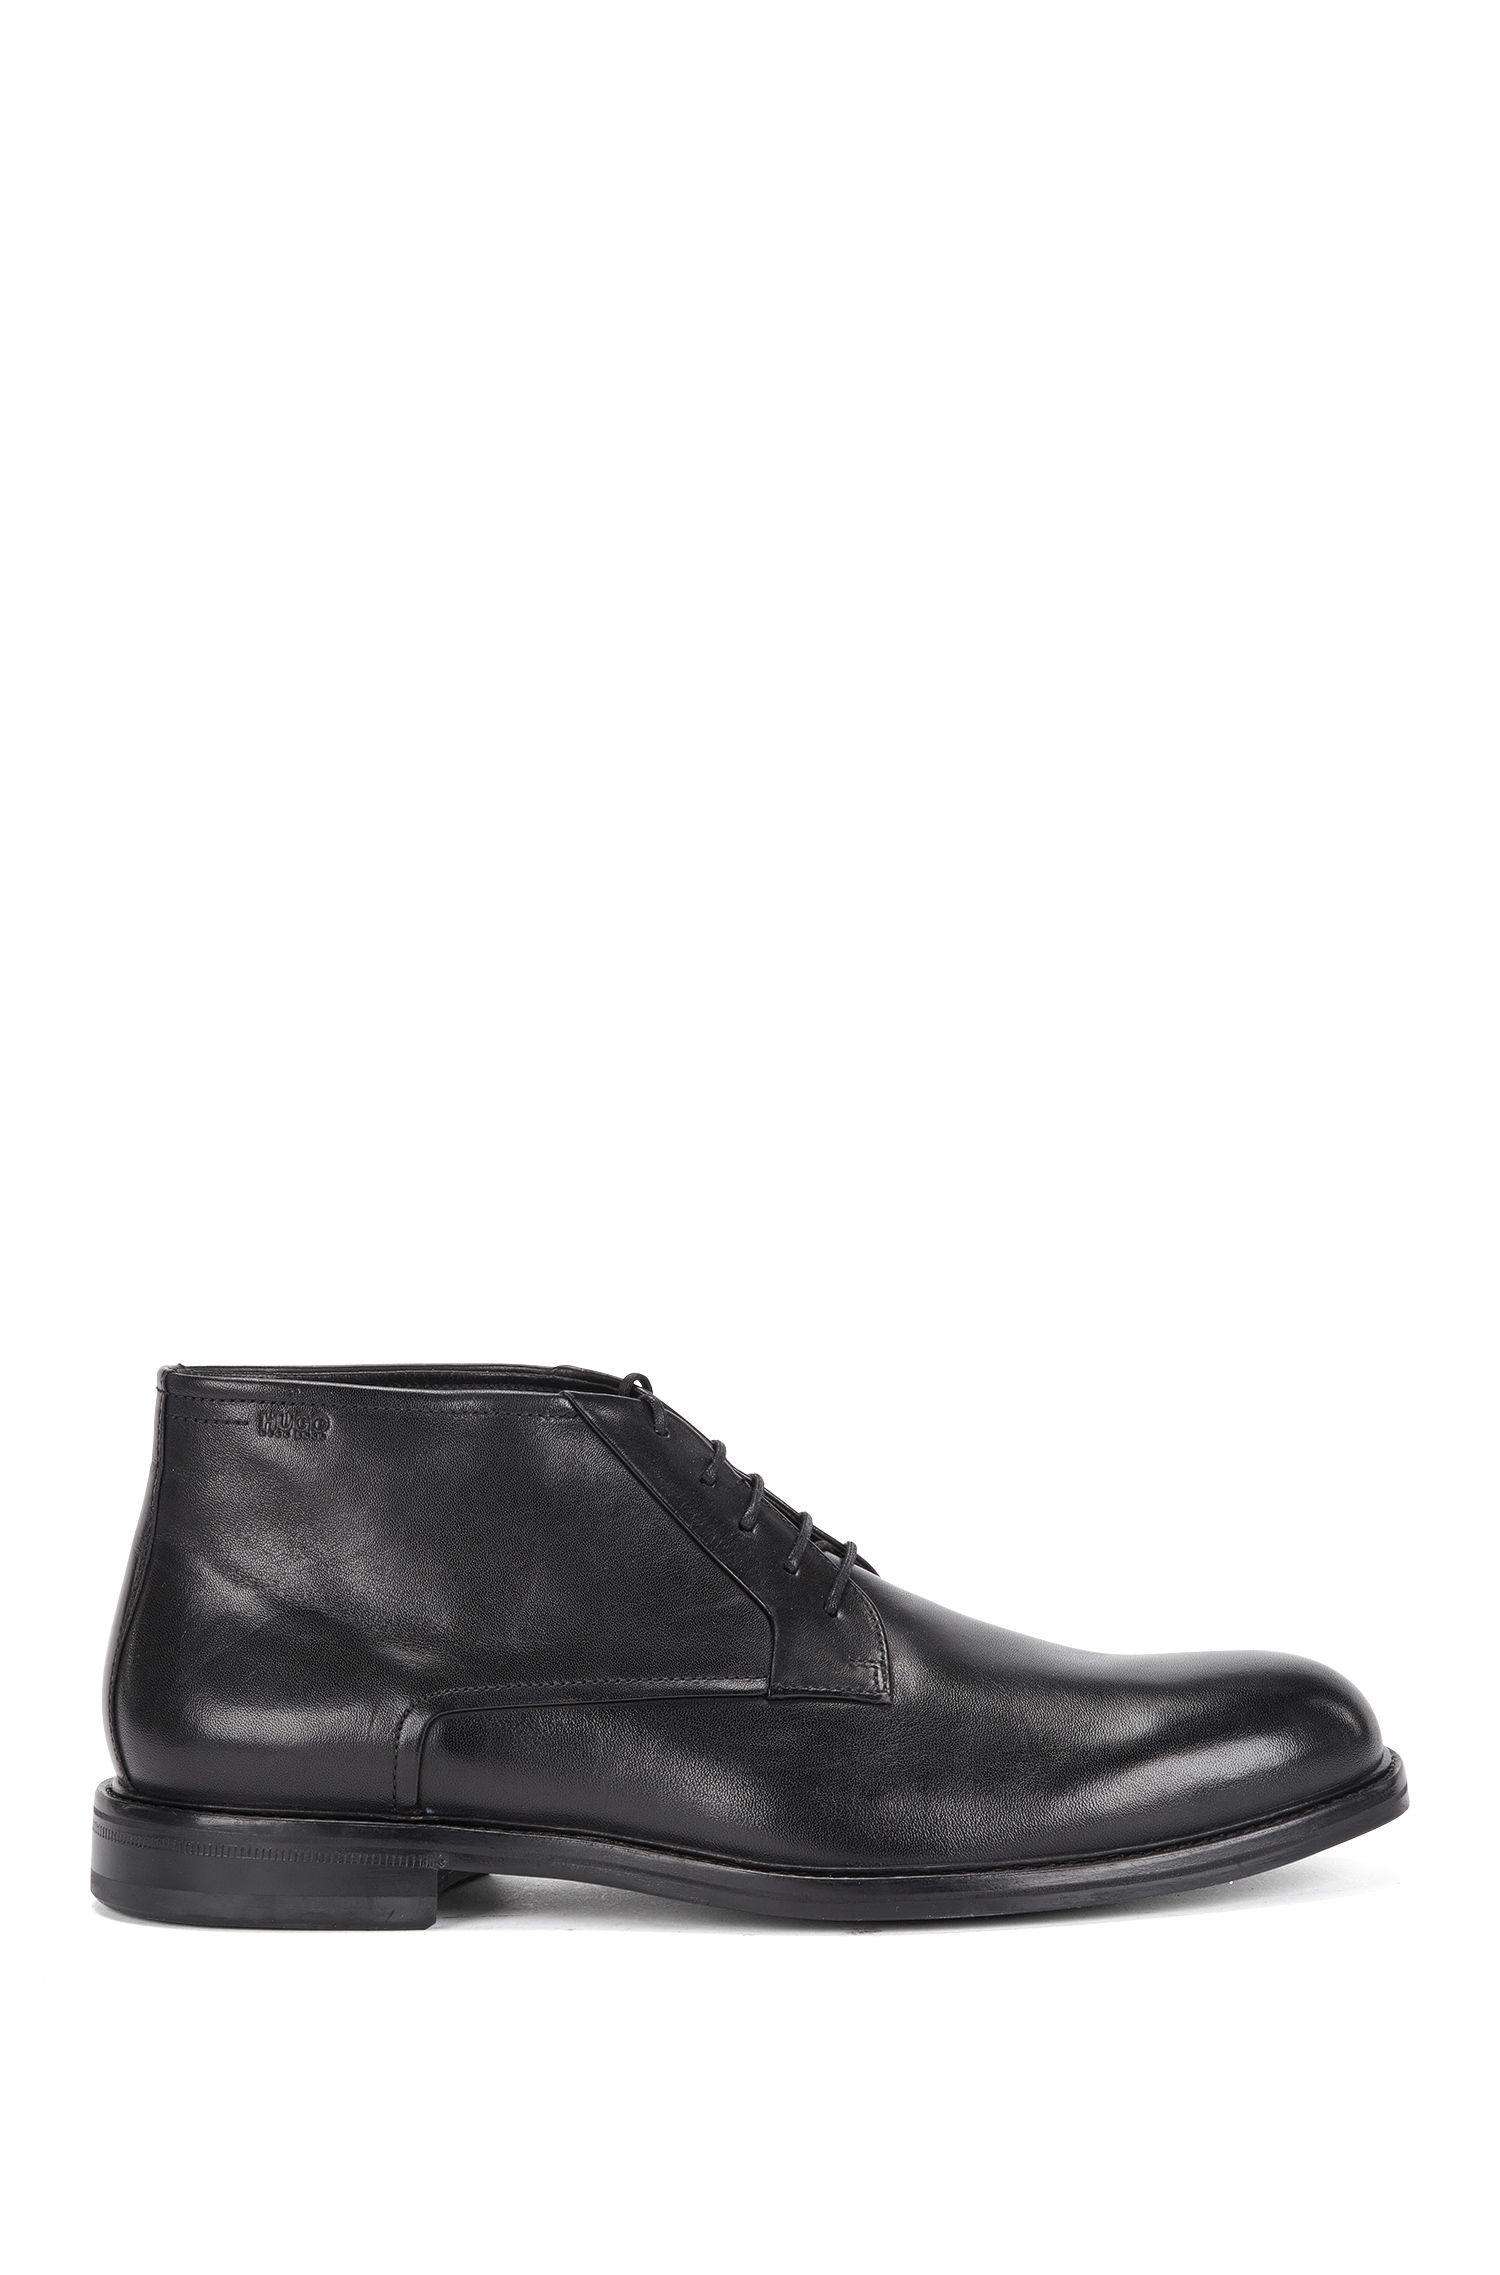 Ankle-high lace-up shoes made from smooth leather in desert boot style: 'Neoclass_Desb_bu'